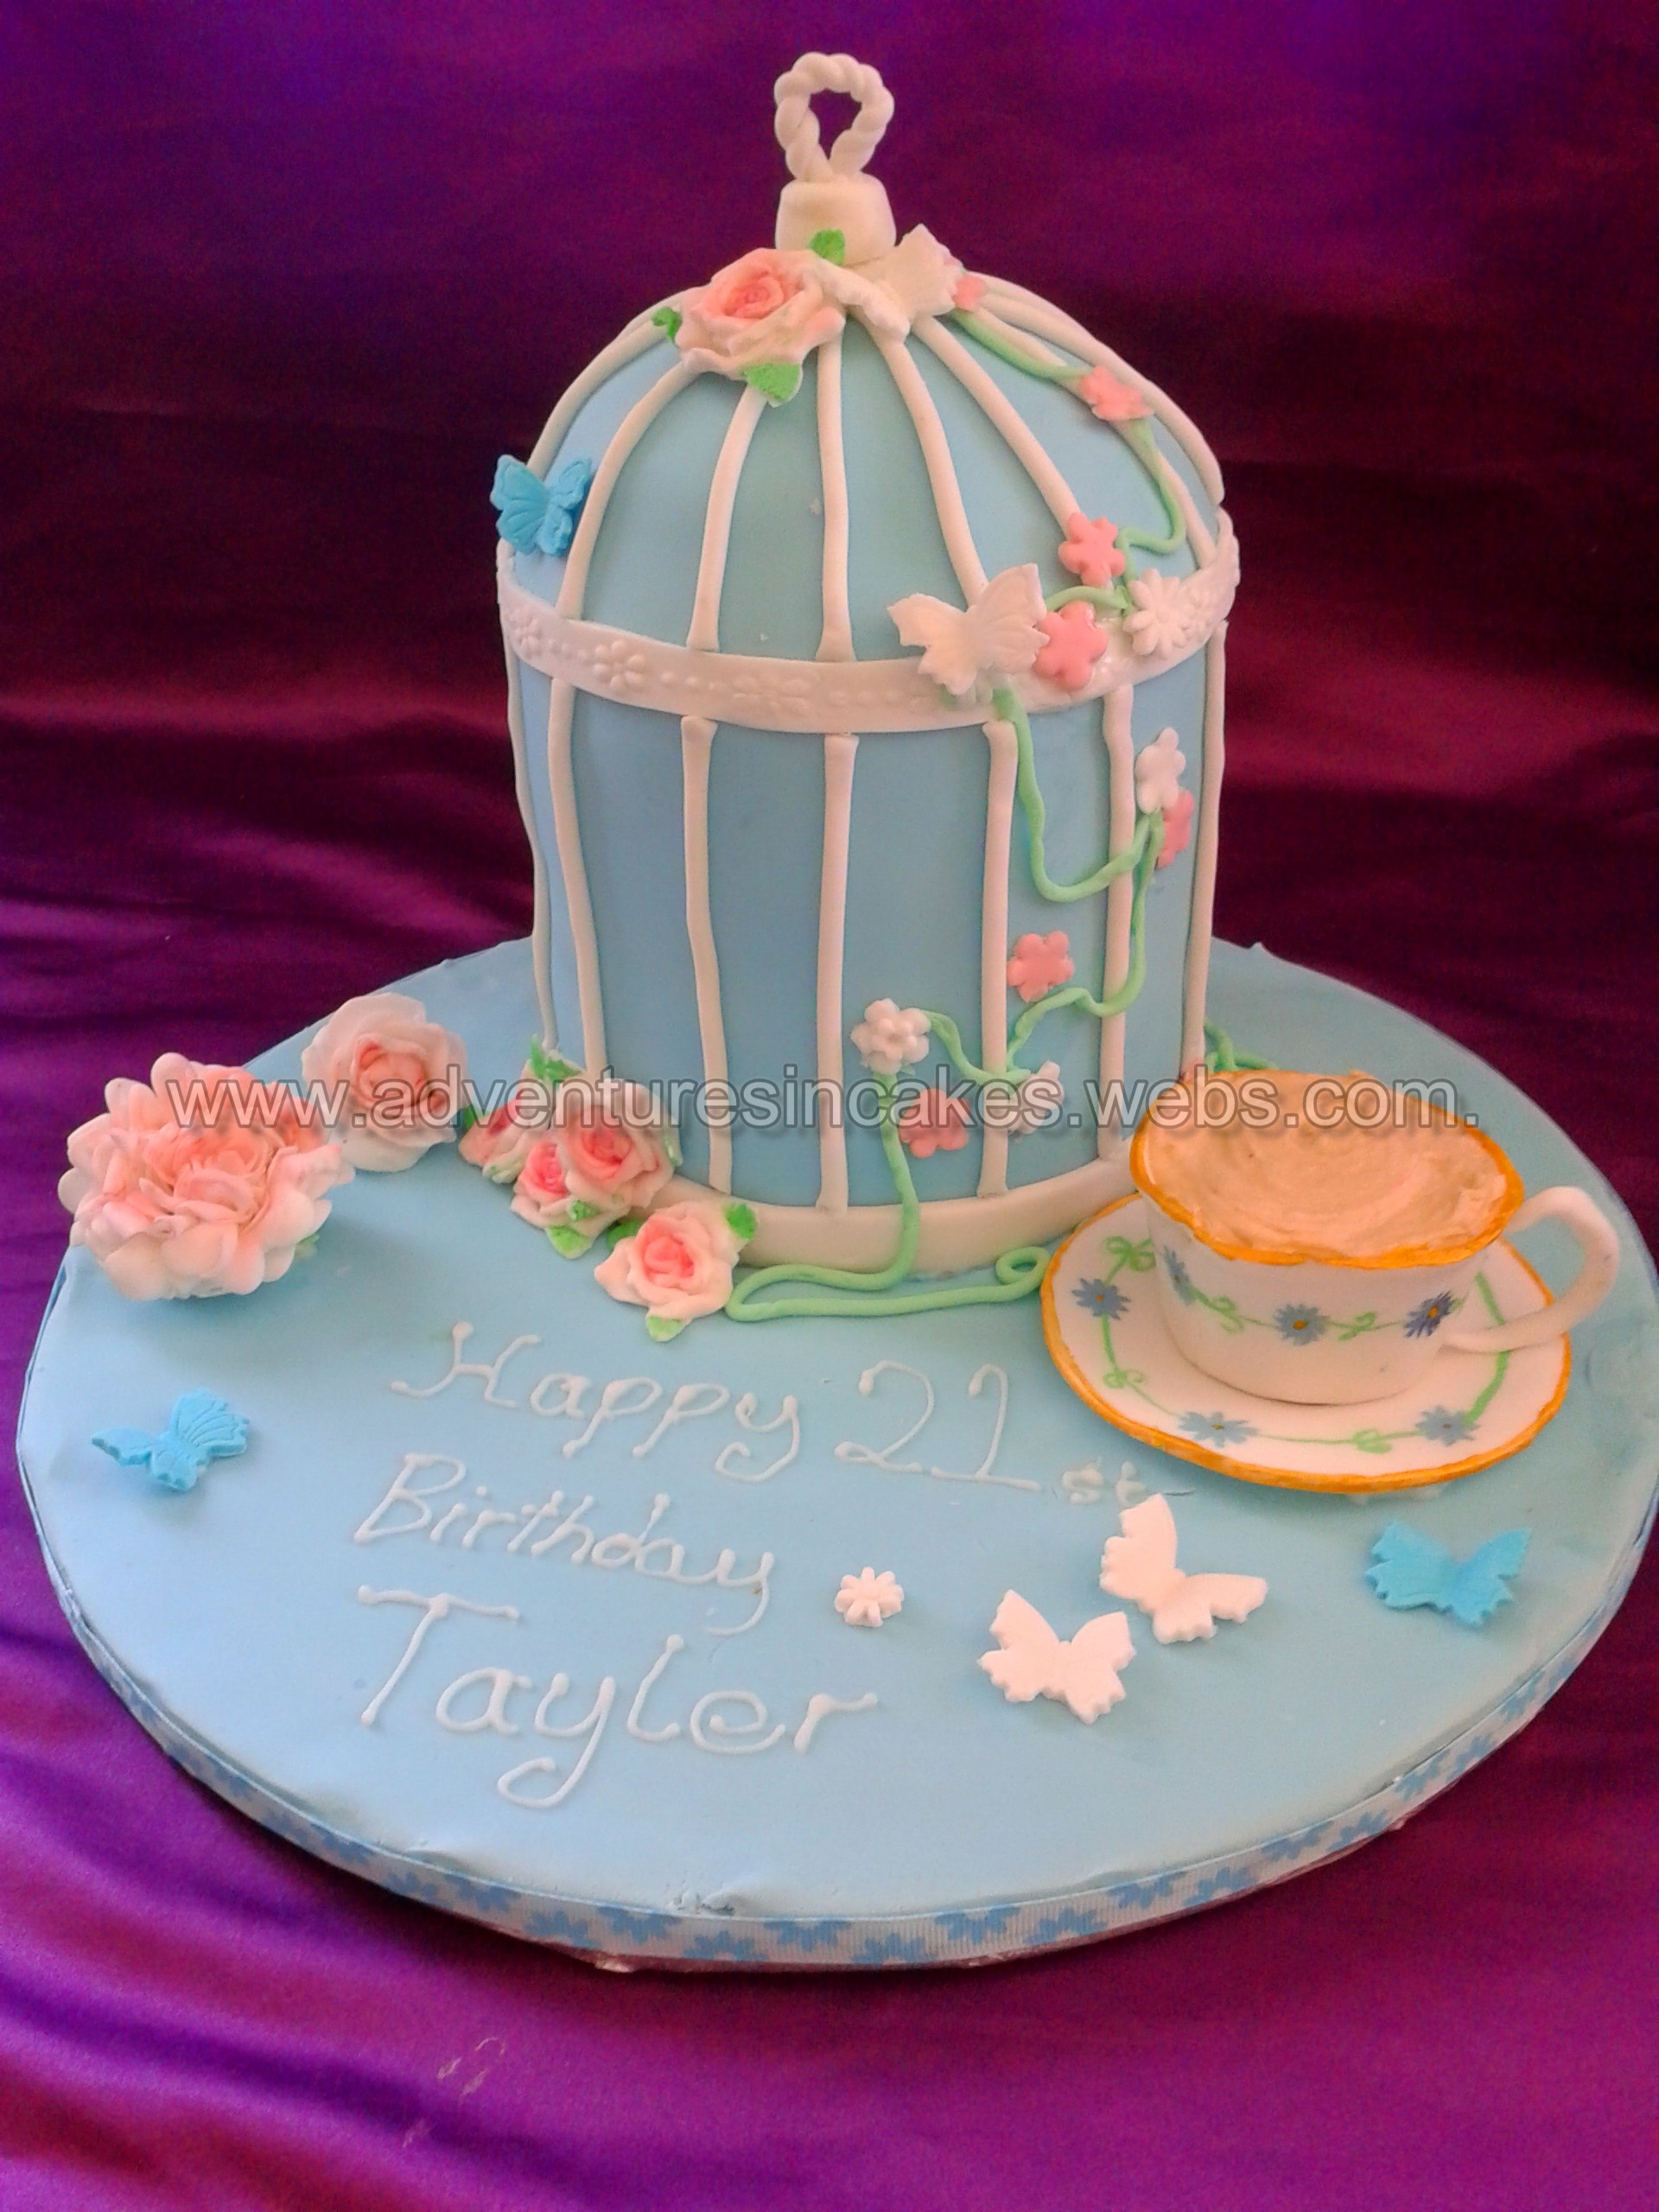 Vintage Birdcage And Teacup Birthday Cake